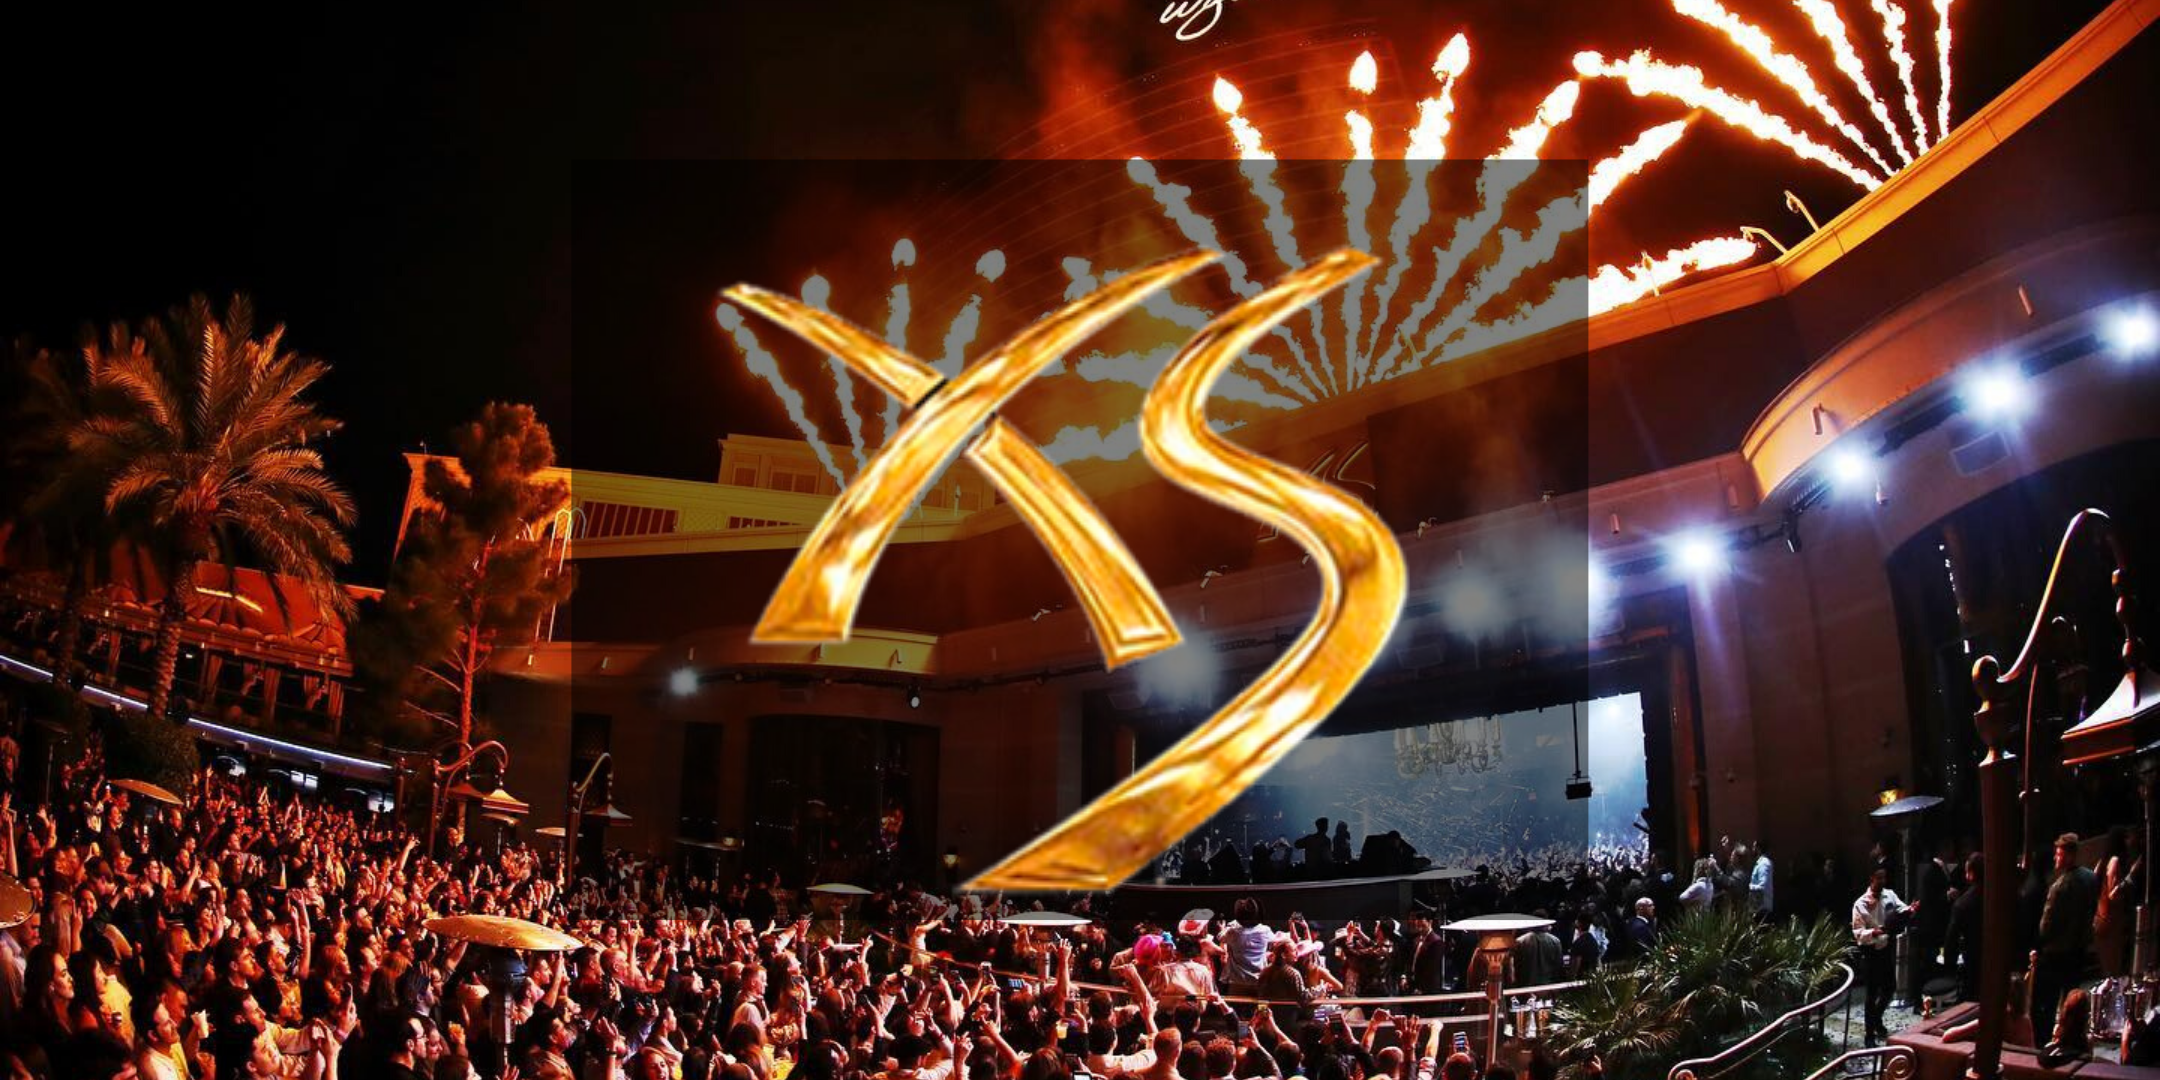 XS NIGHTCLUB - SUNDAY NIGHTSWIM PARTY - FREE GUEST LIST for MEN AND WOMEN!